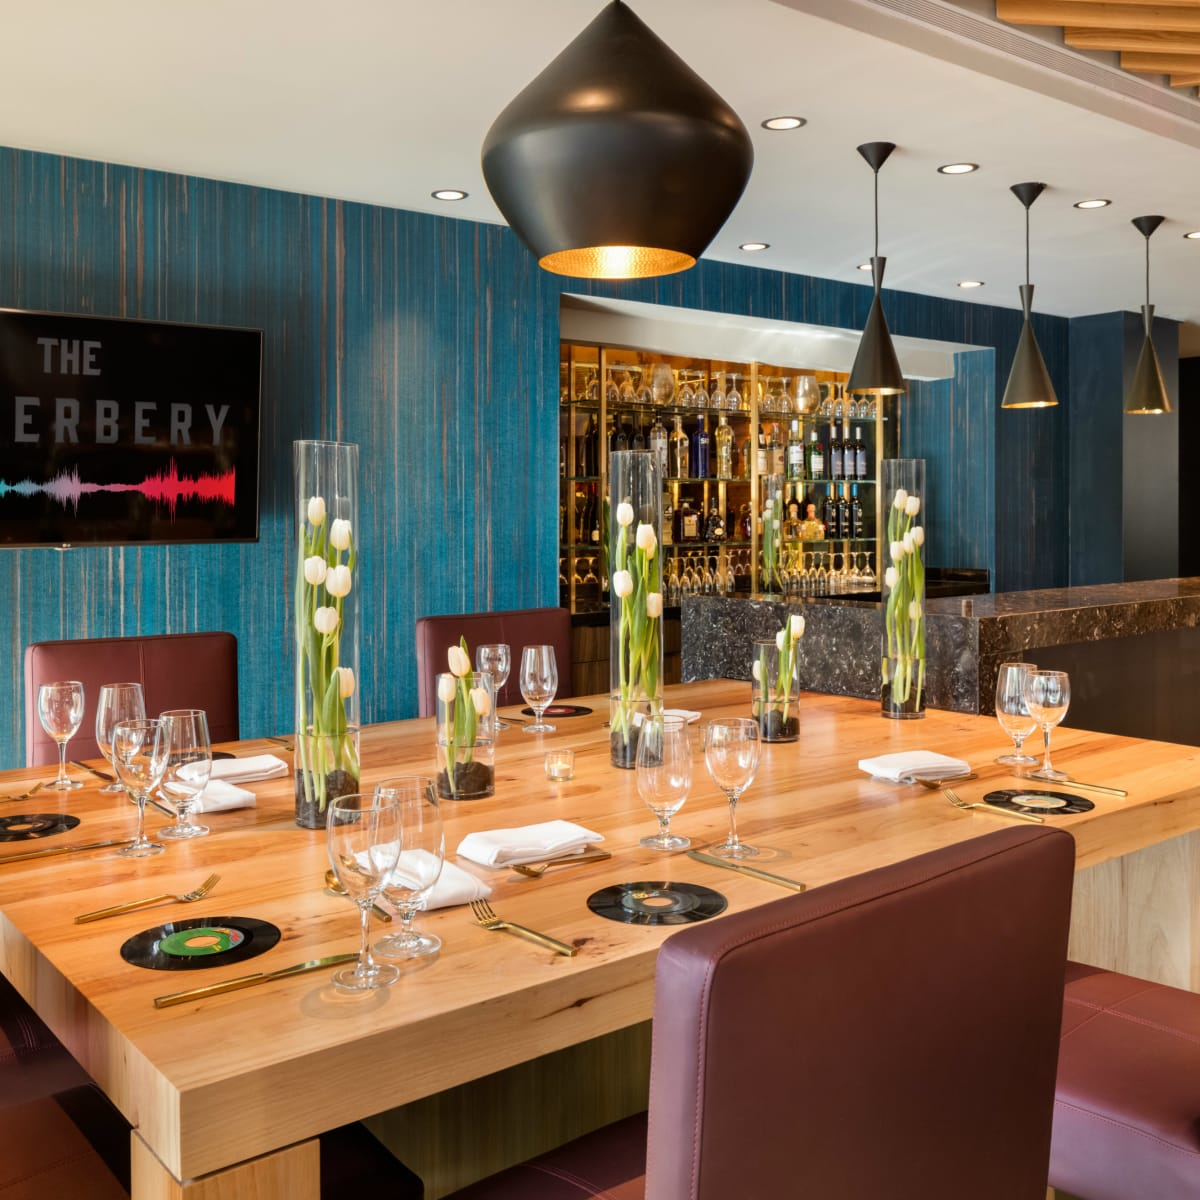 The Reverbery dining area